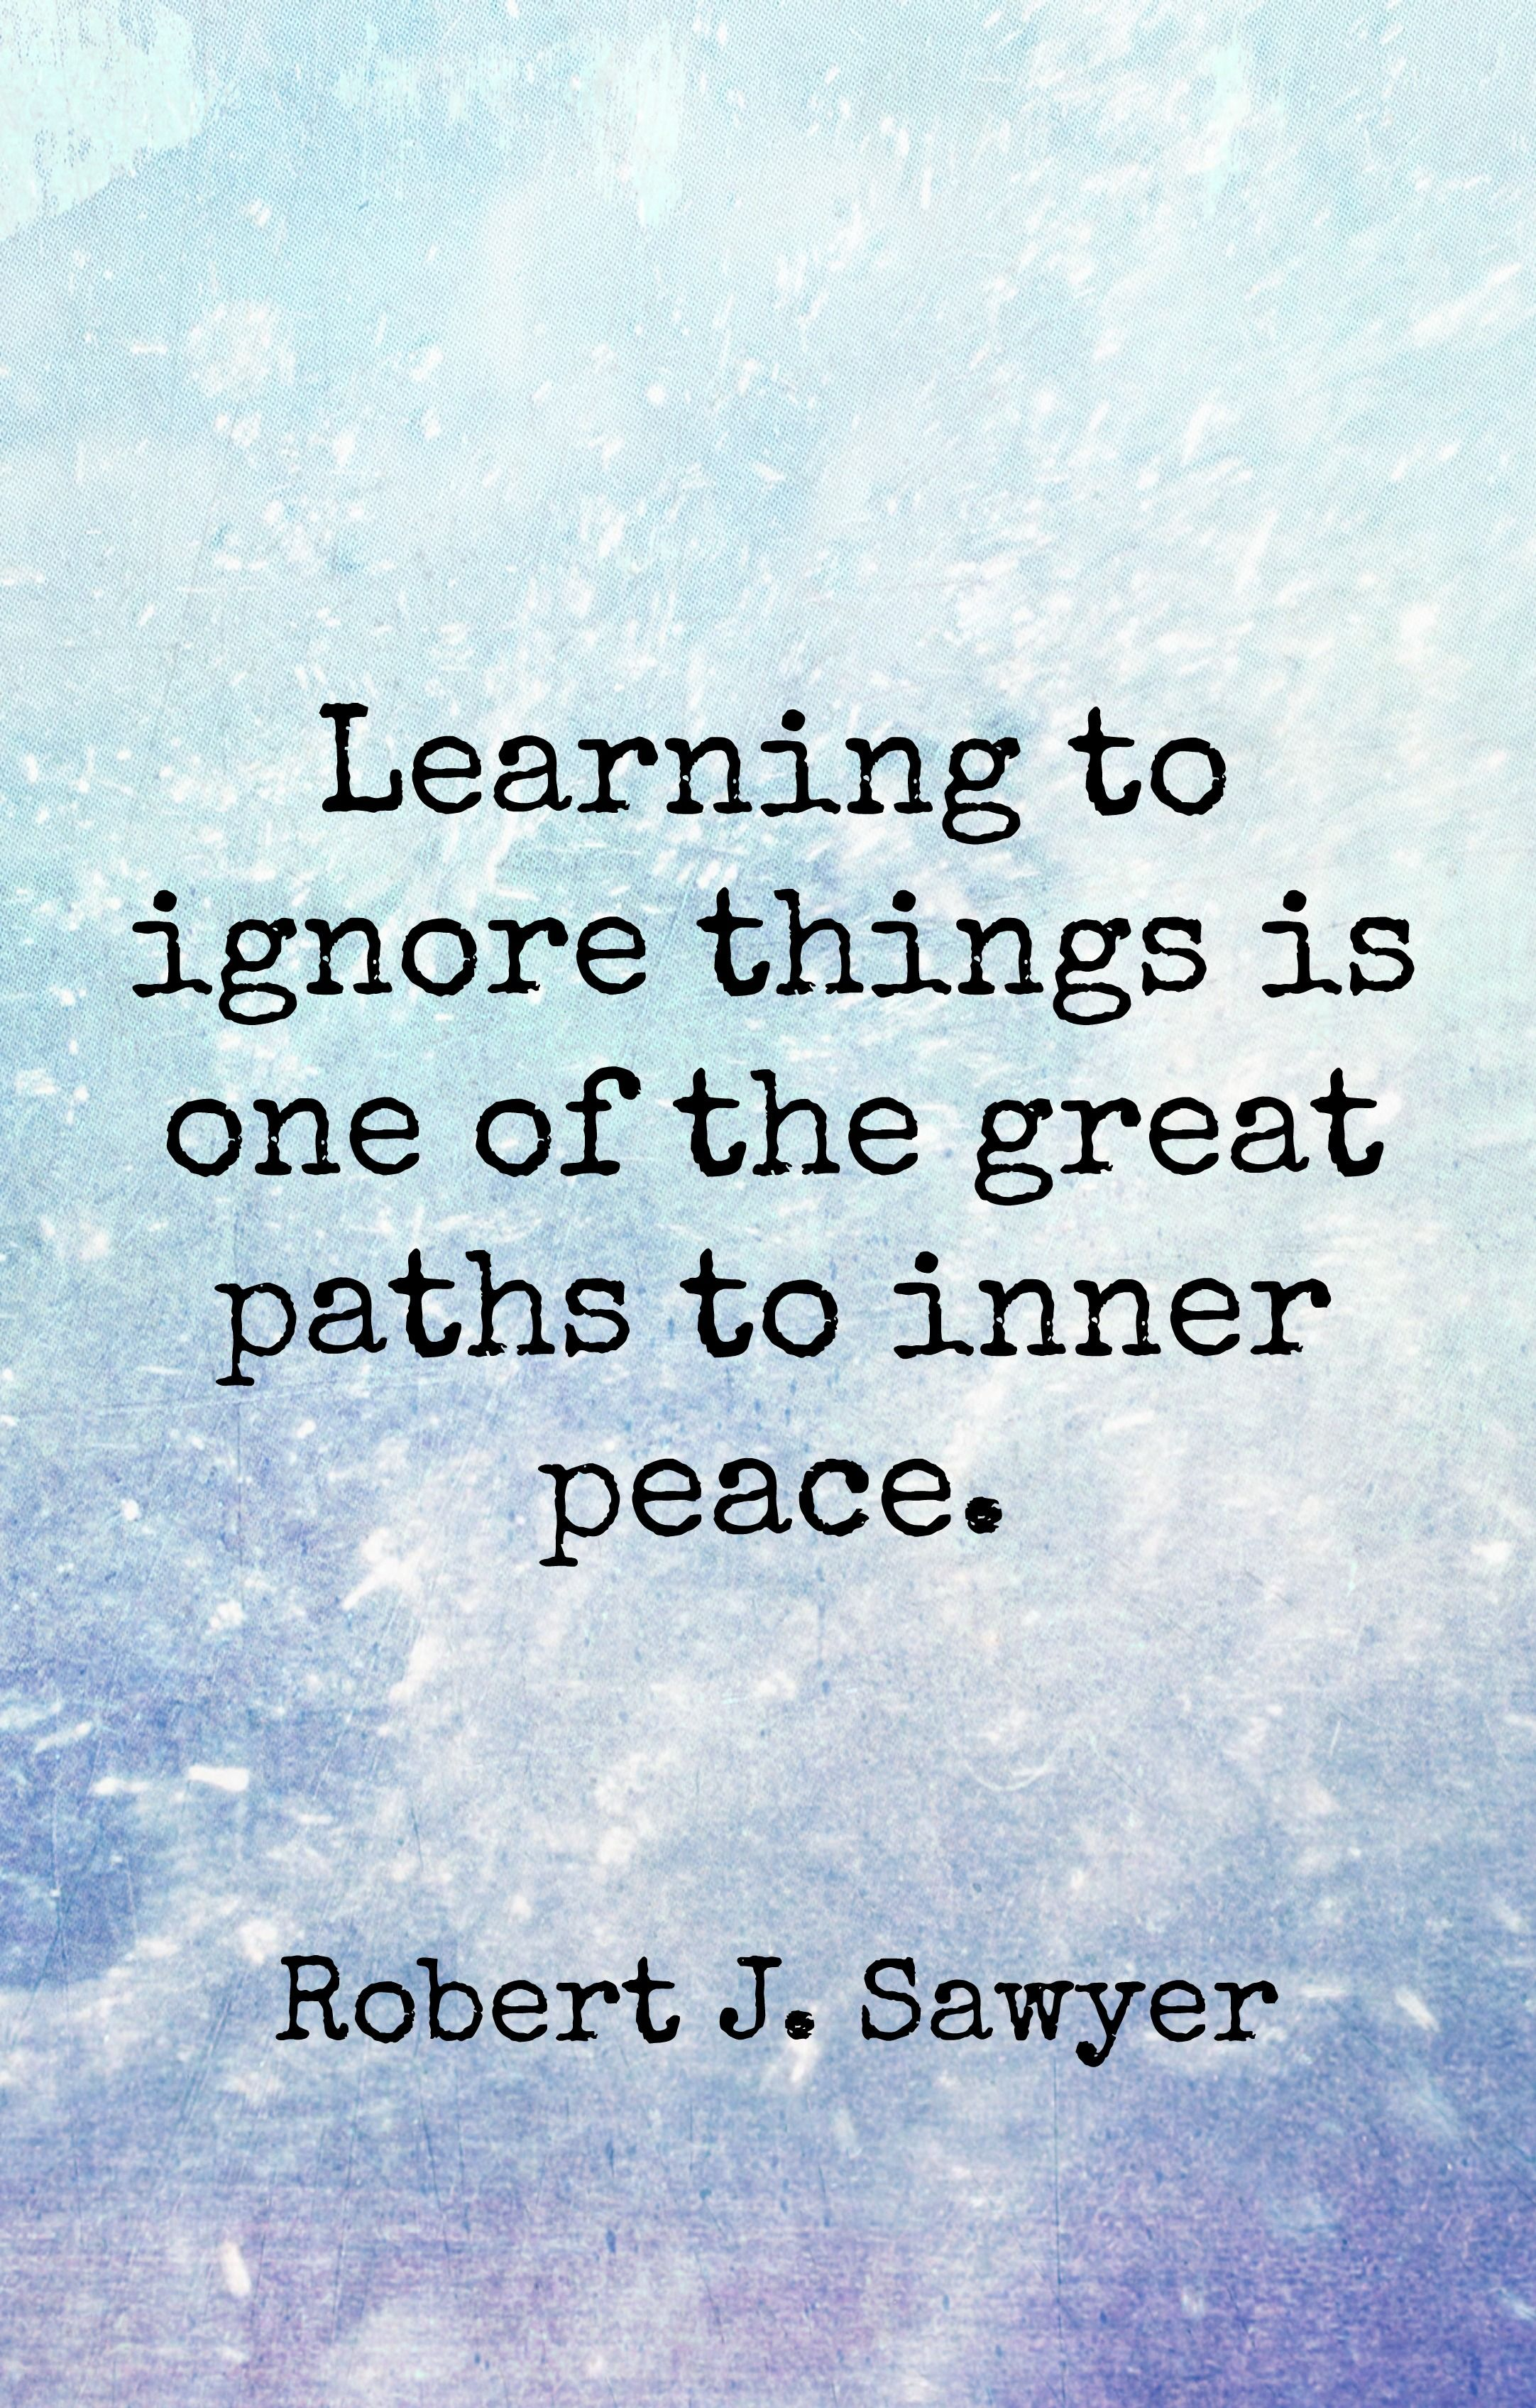 Finding Peace Quotes Learning To Ignore Things Is One Of The Great Paths To Inner Peace